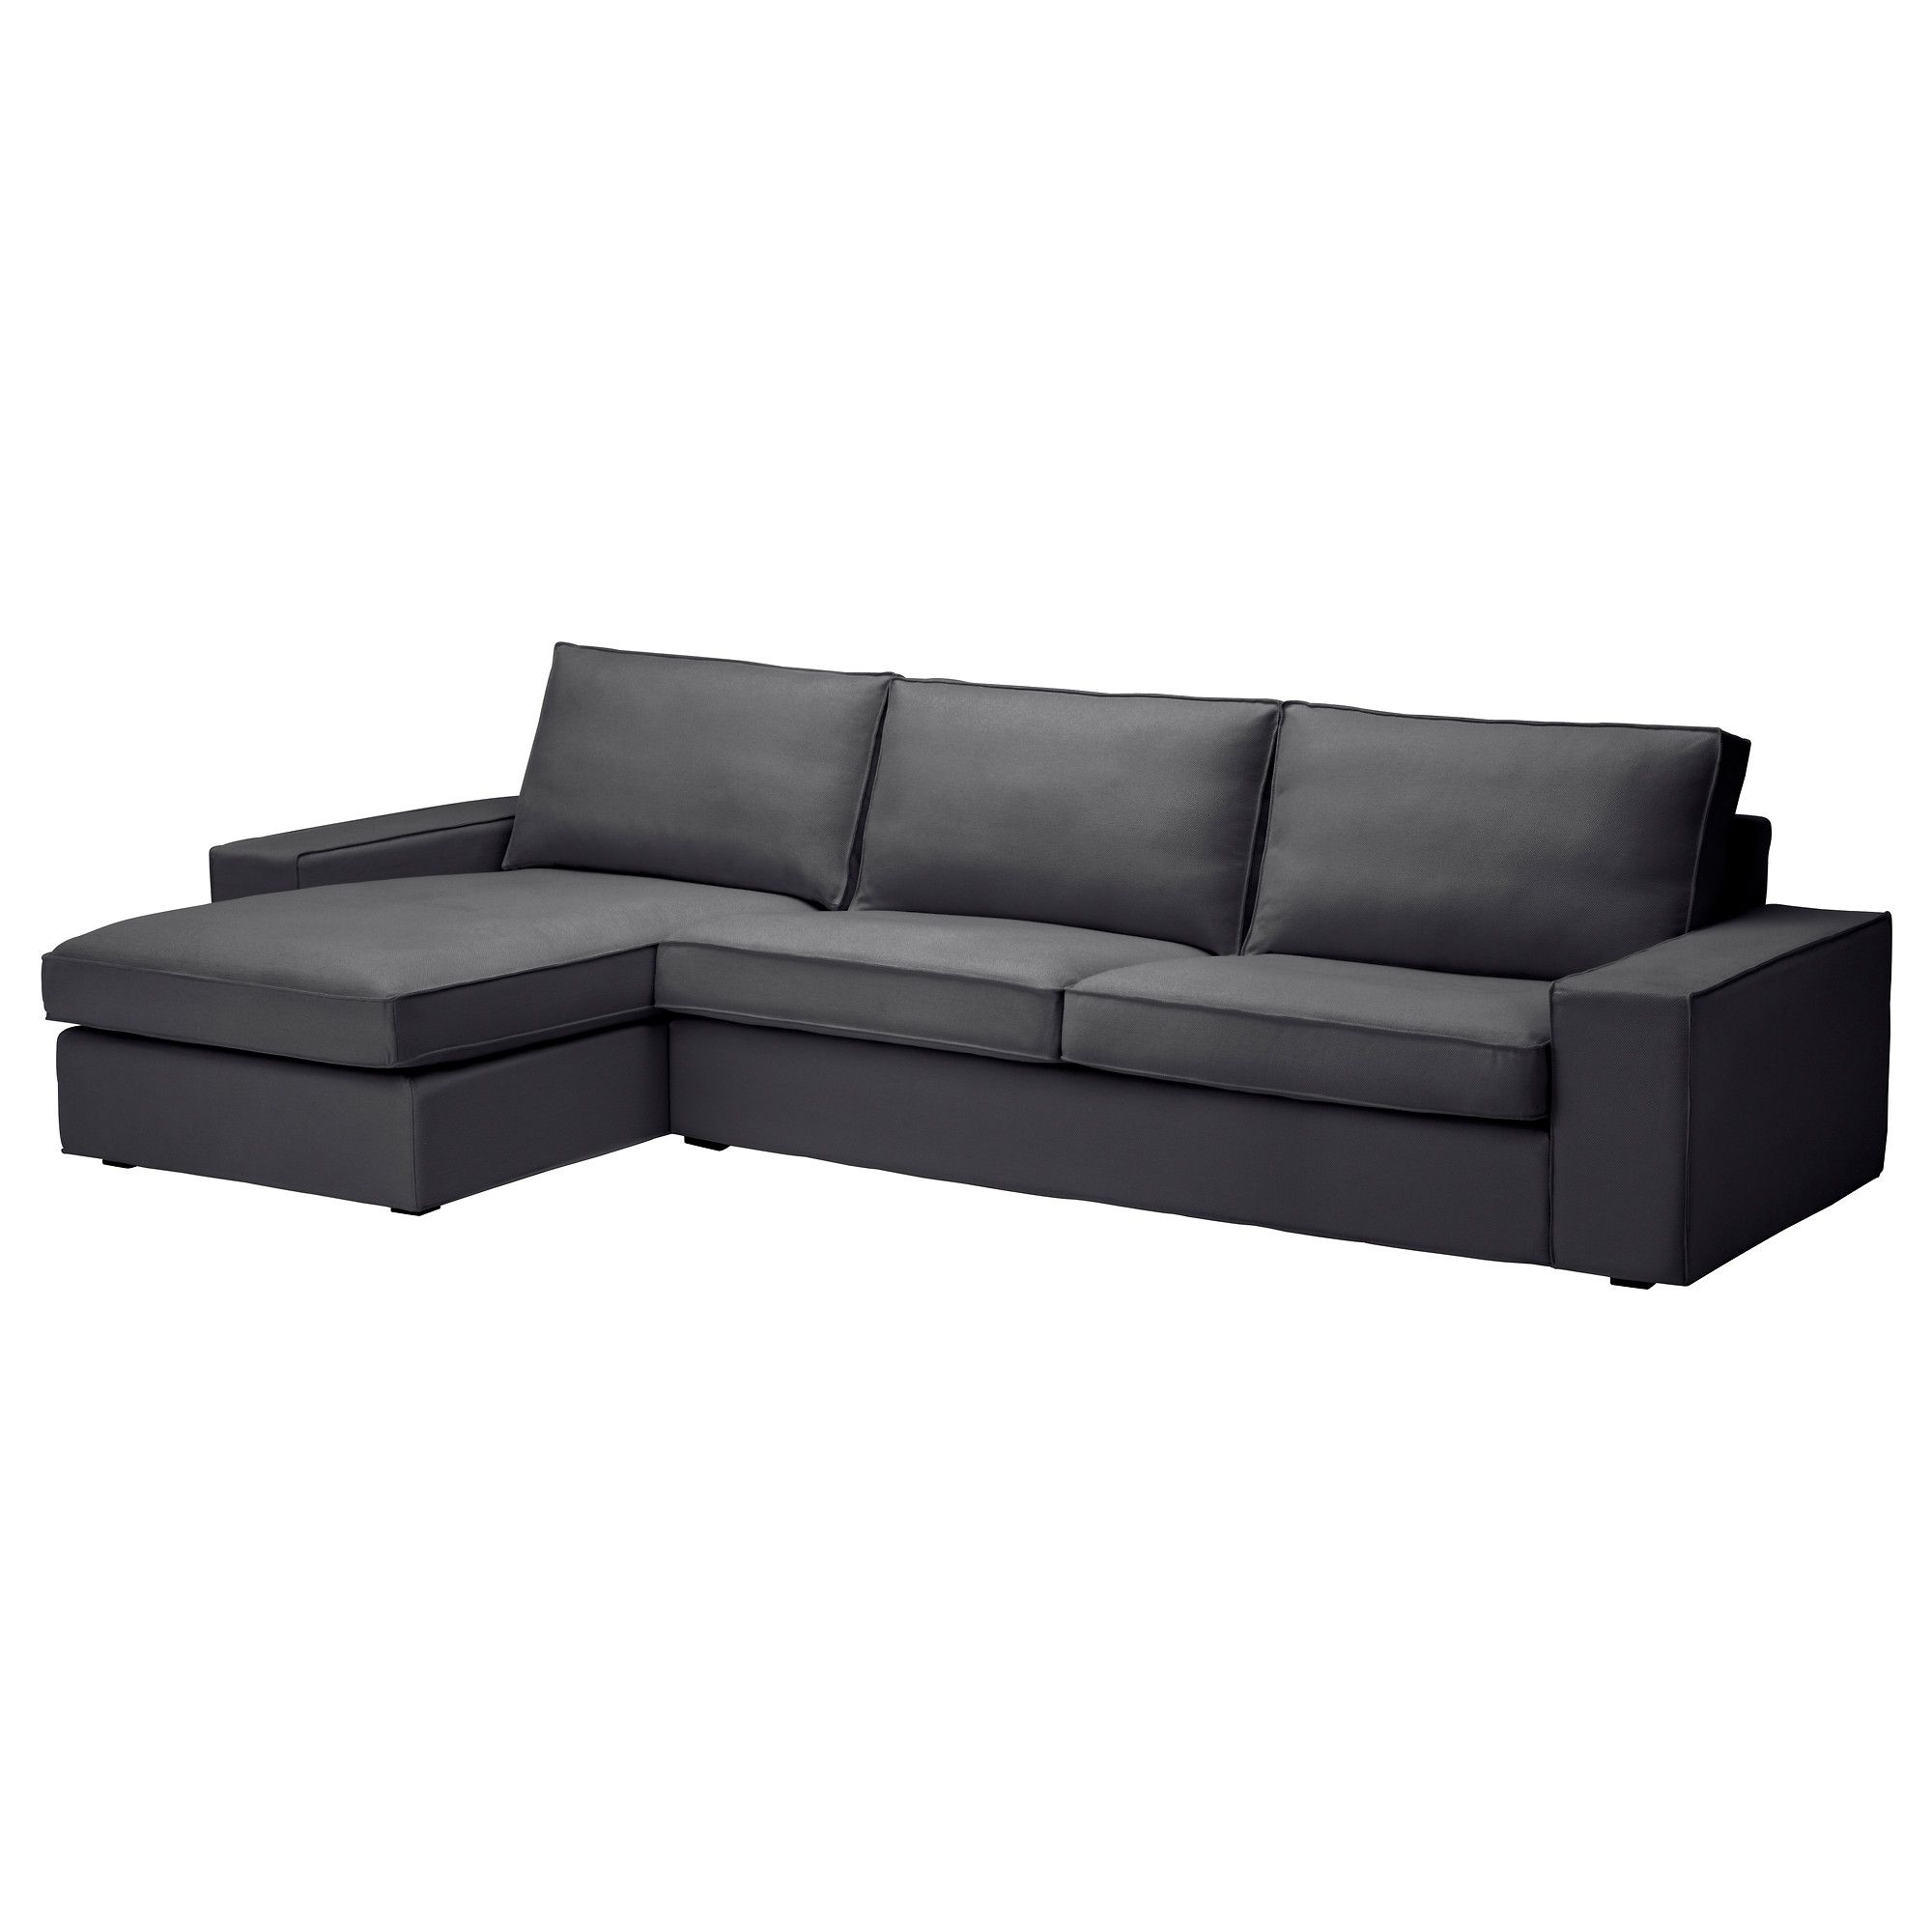 Kivik Sofa And Chaise Lounge Dansbo Dark Gray Sofa Chaise 938 Or Loveseat Chaise